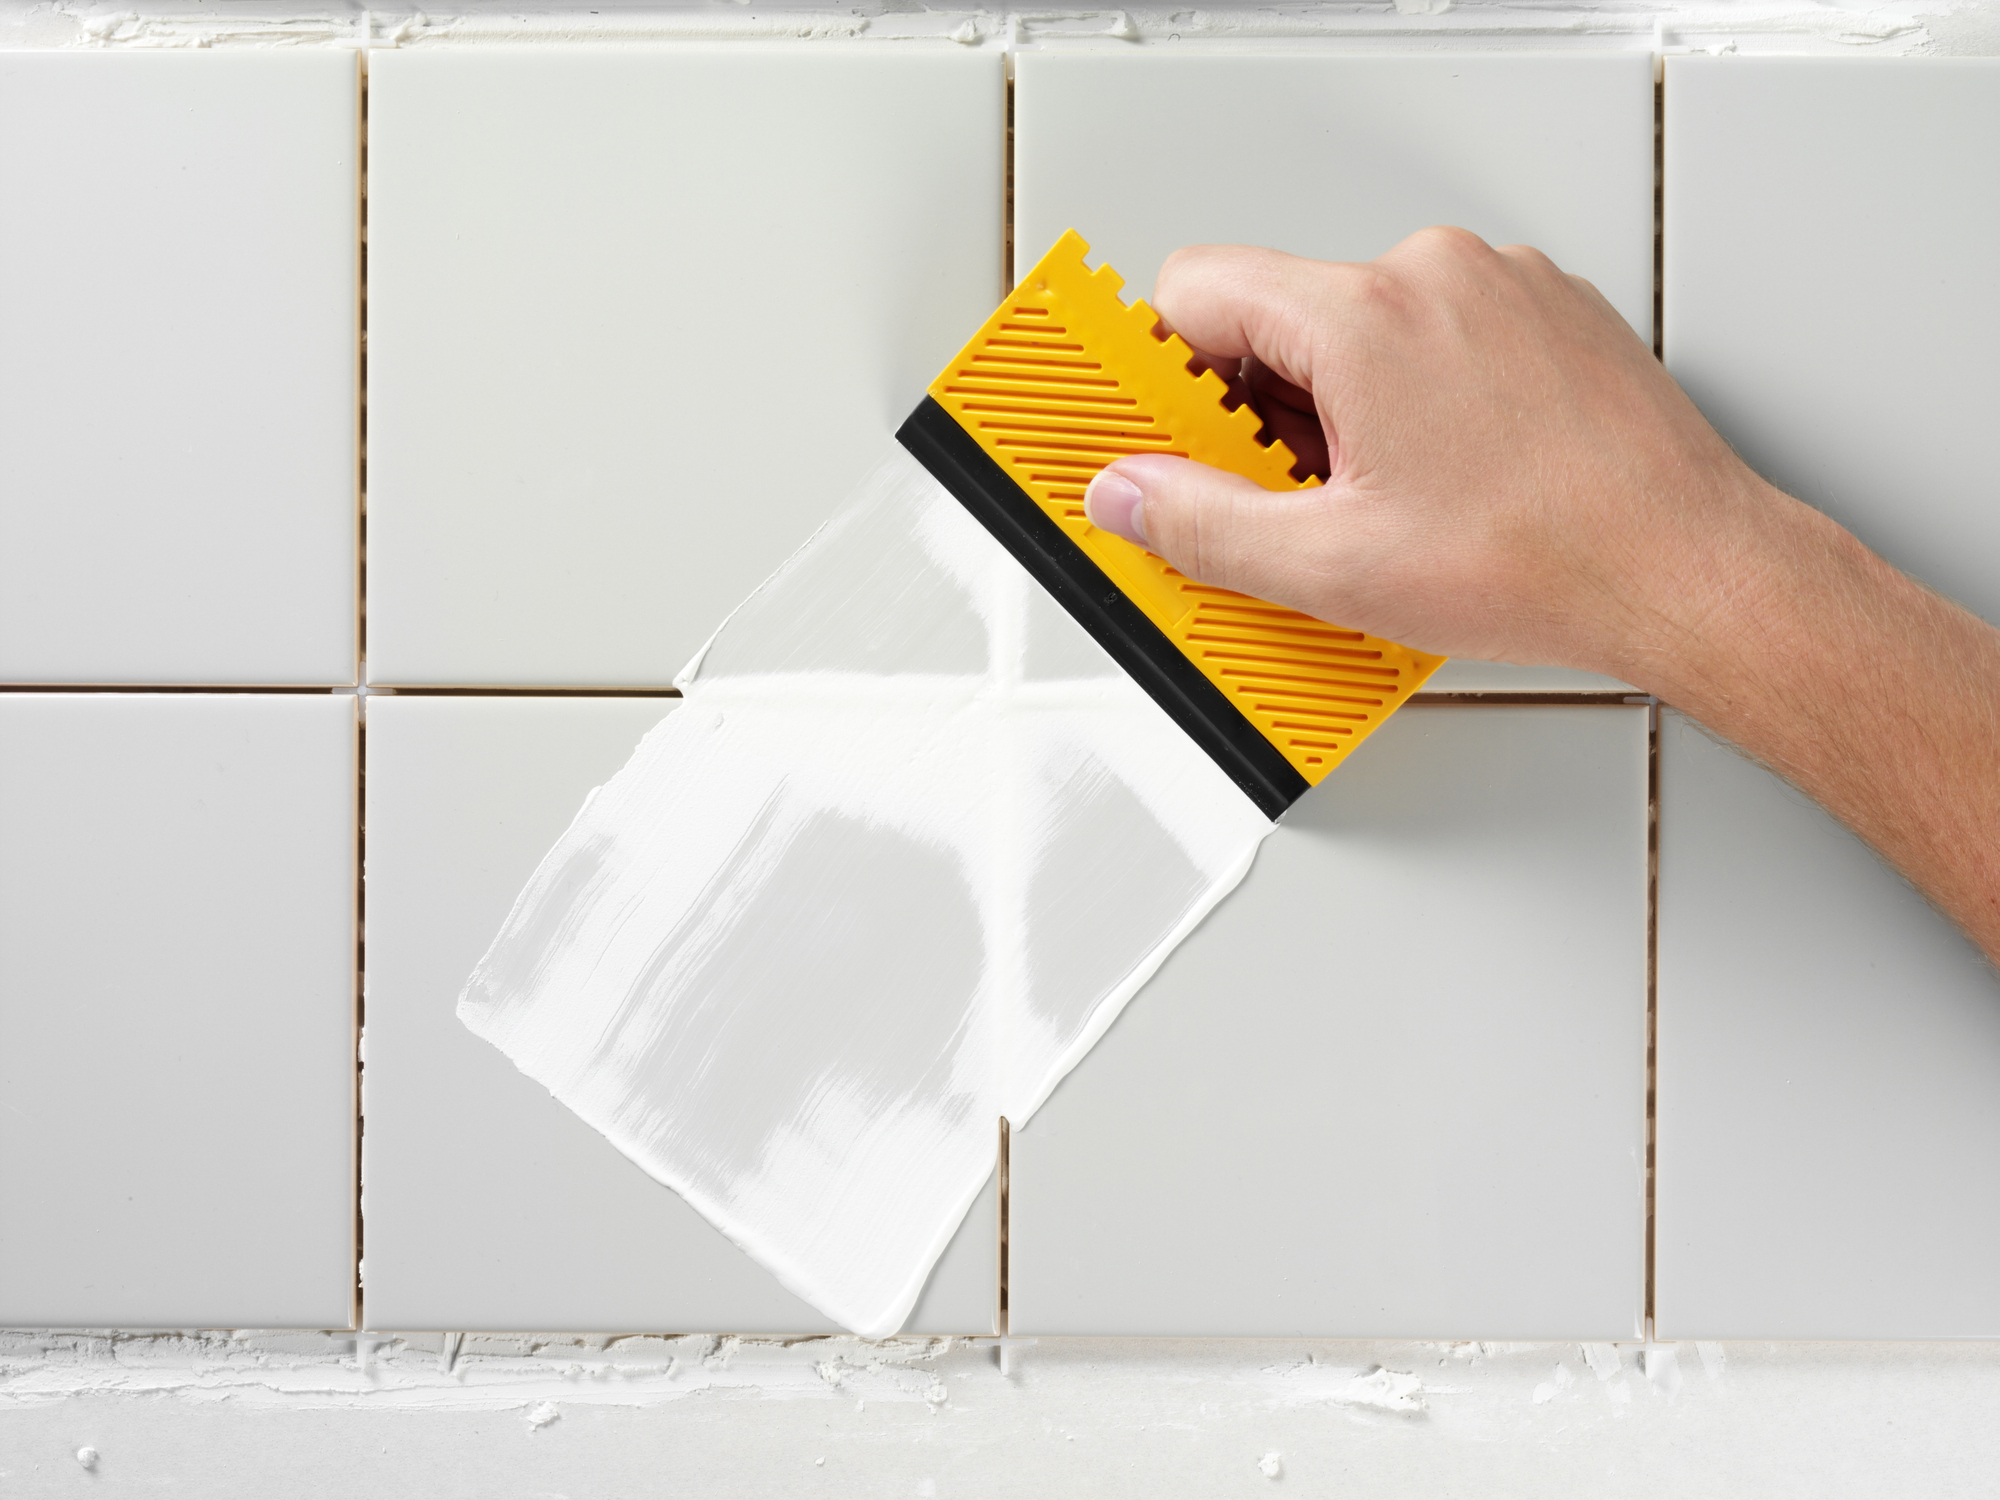 Applying grout with a spreader